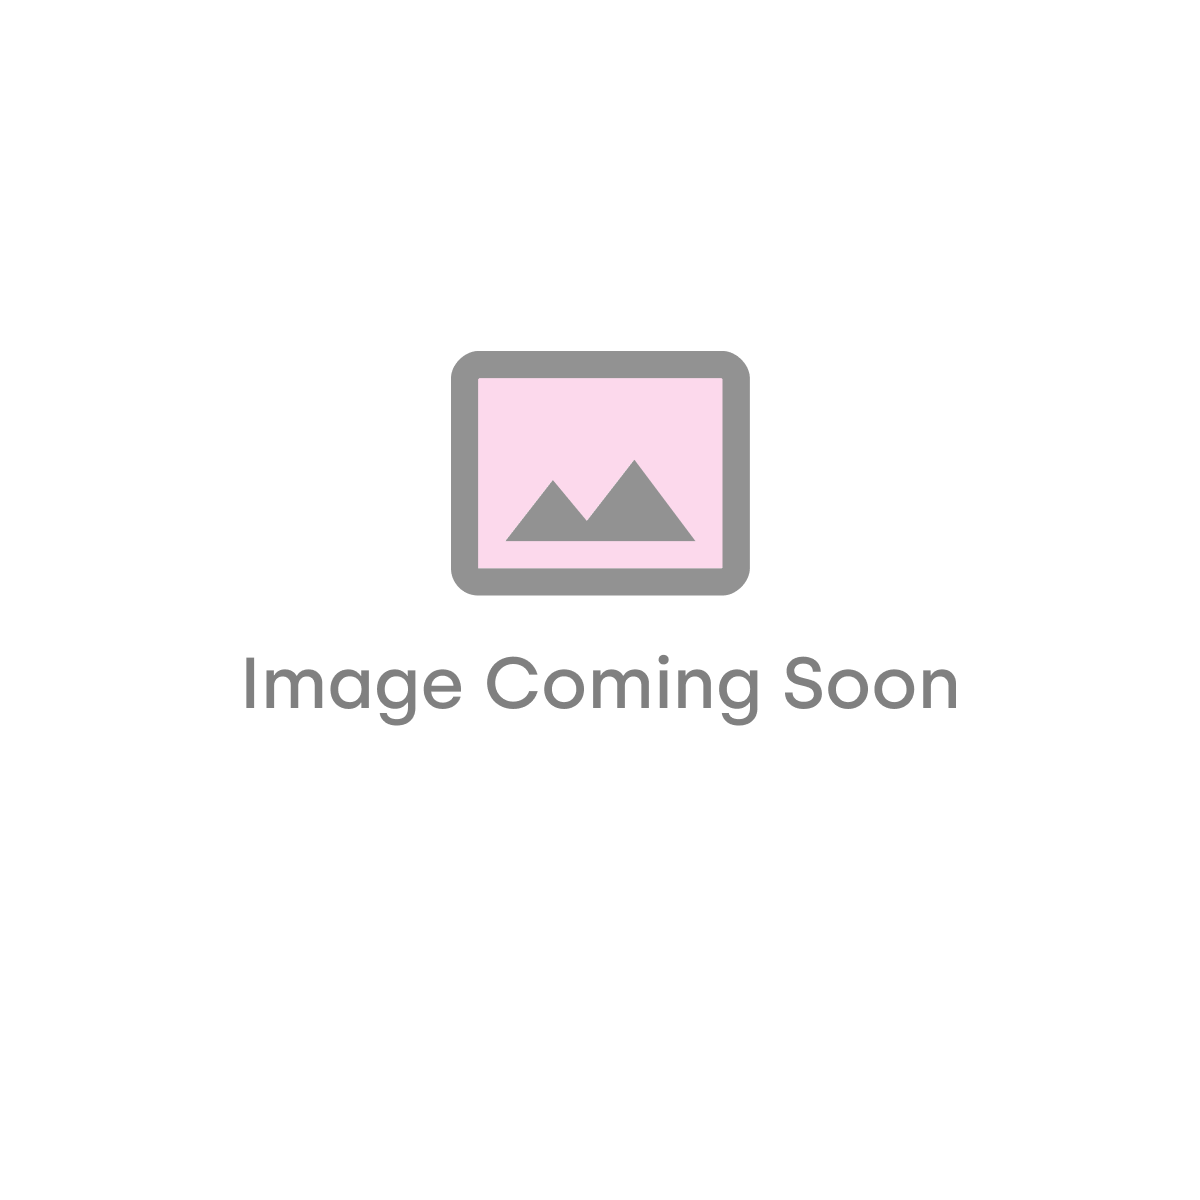 Eden Mini Cloakroom Floorstanding Vanity Unit & Basin - Gloss White (18900)